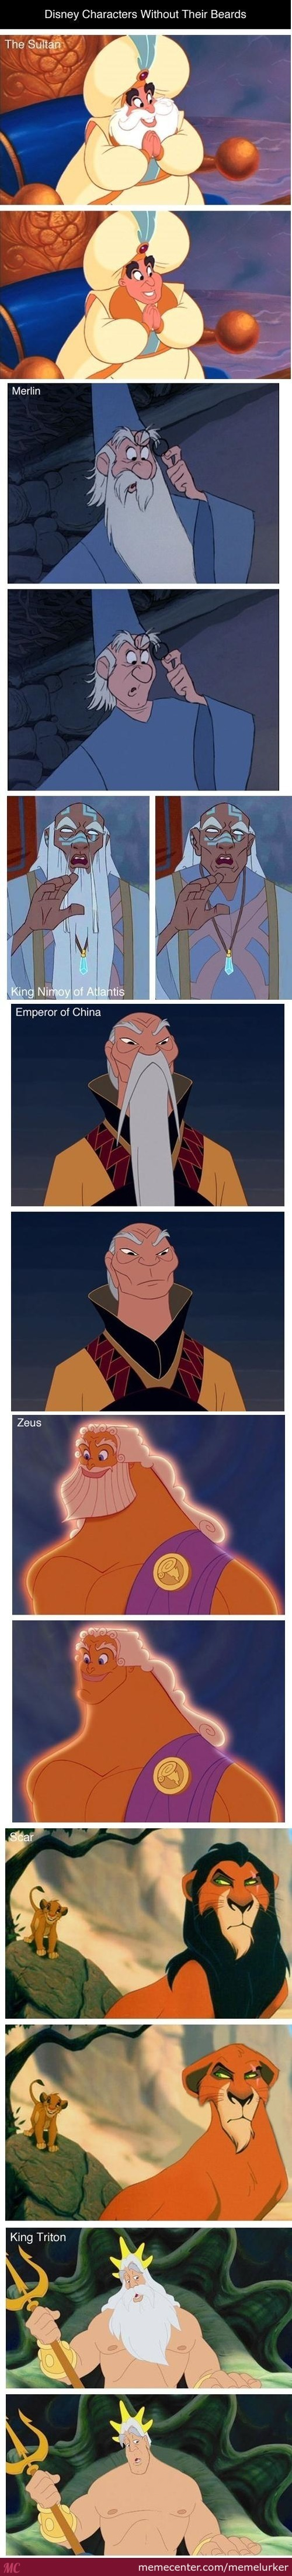 Disney Character Without Beards